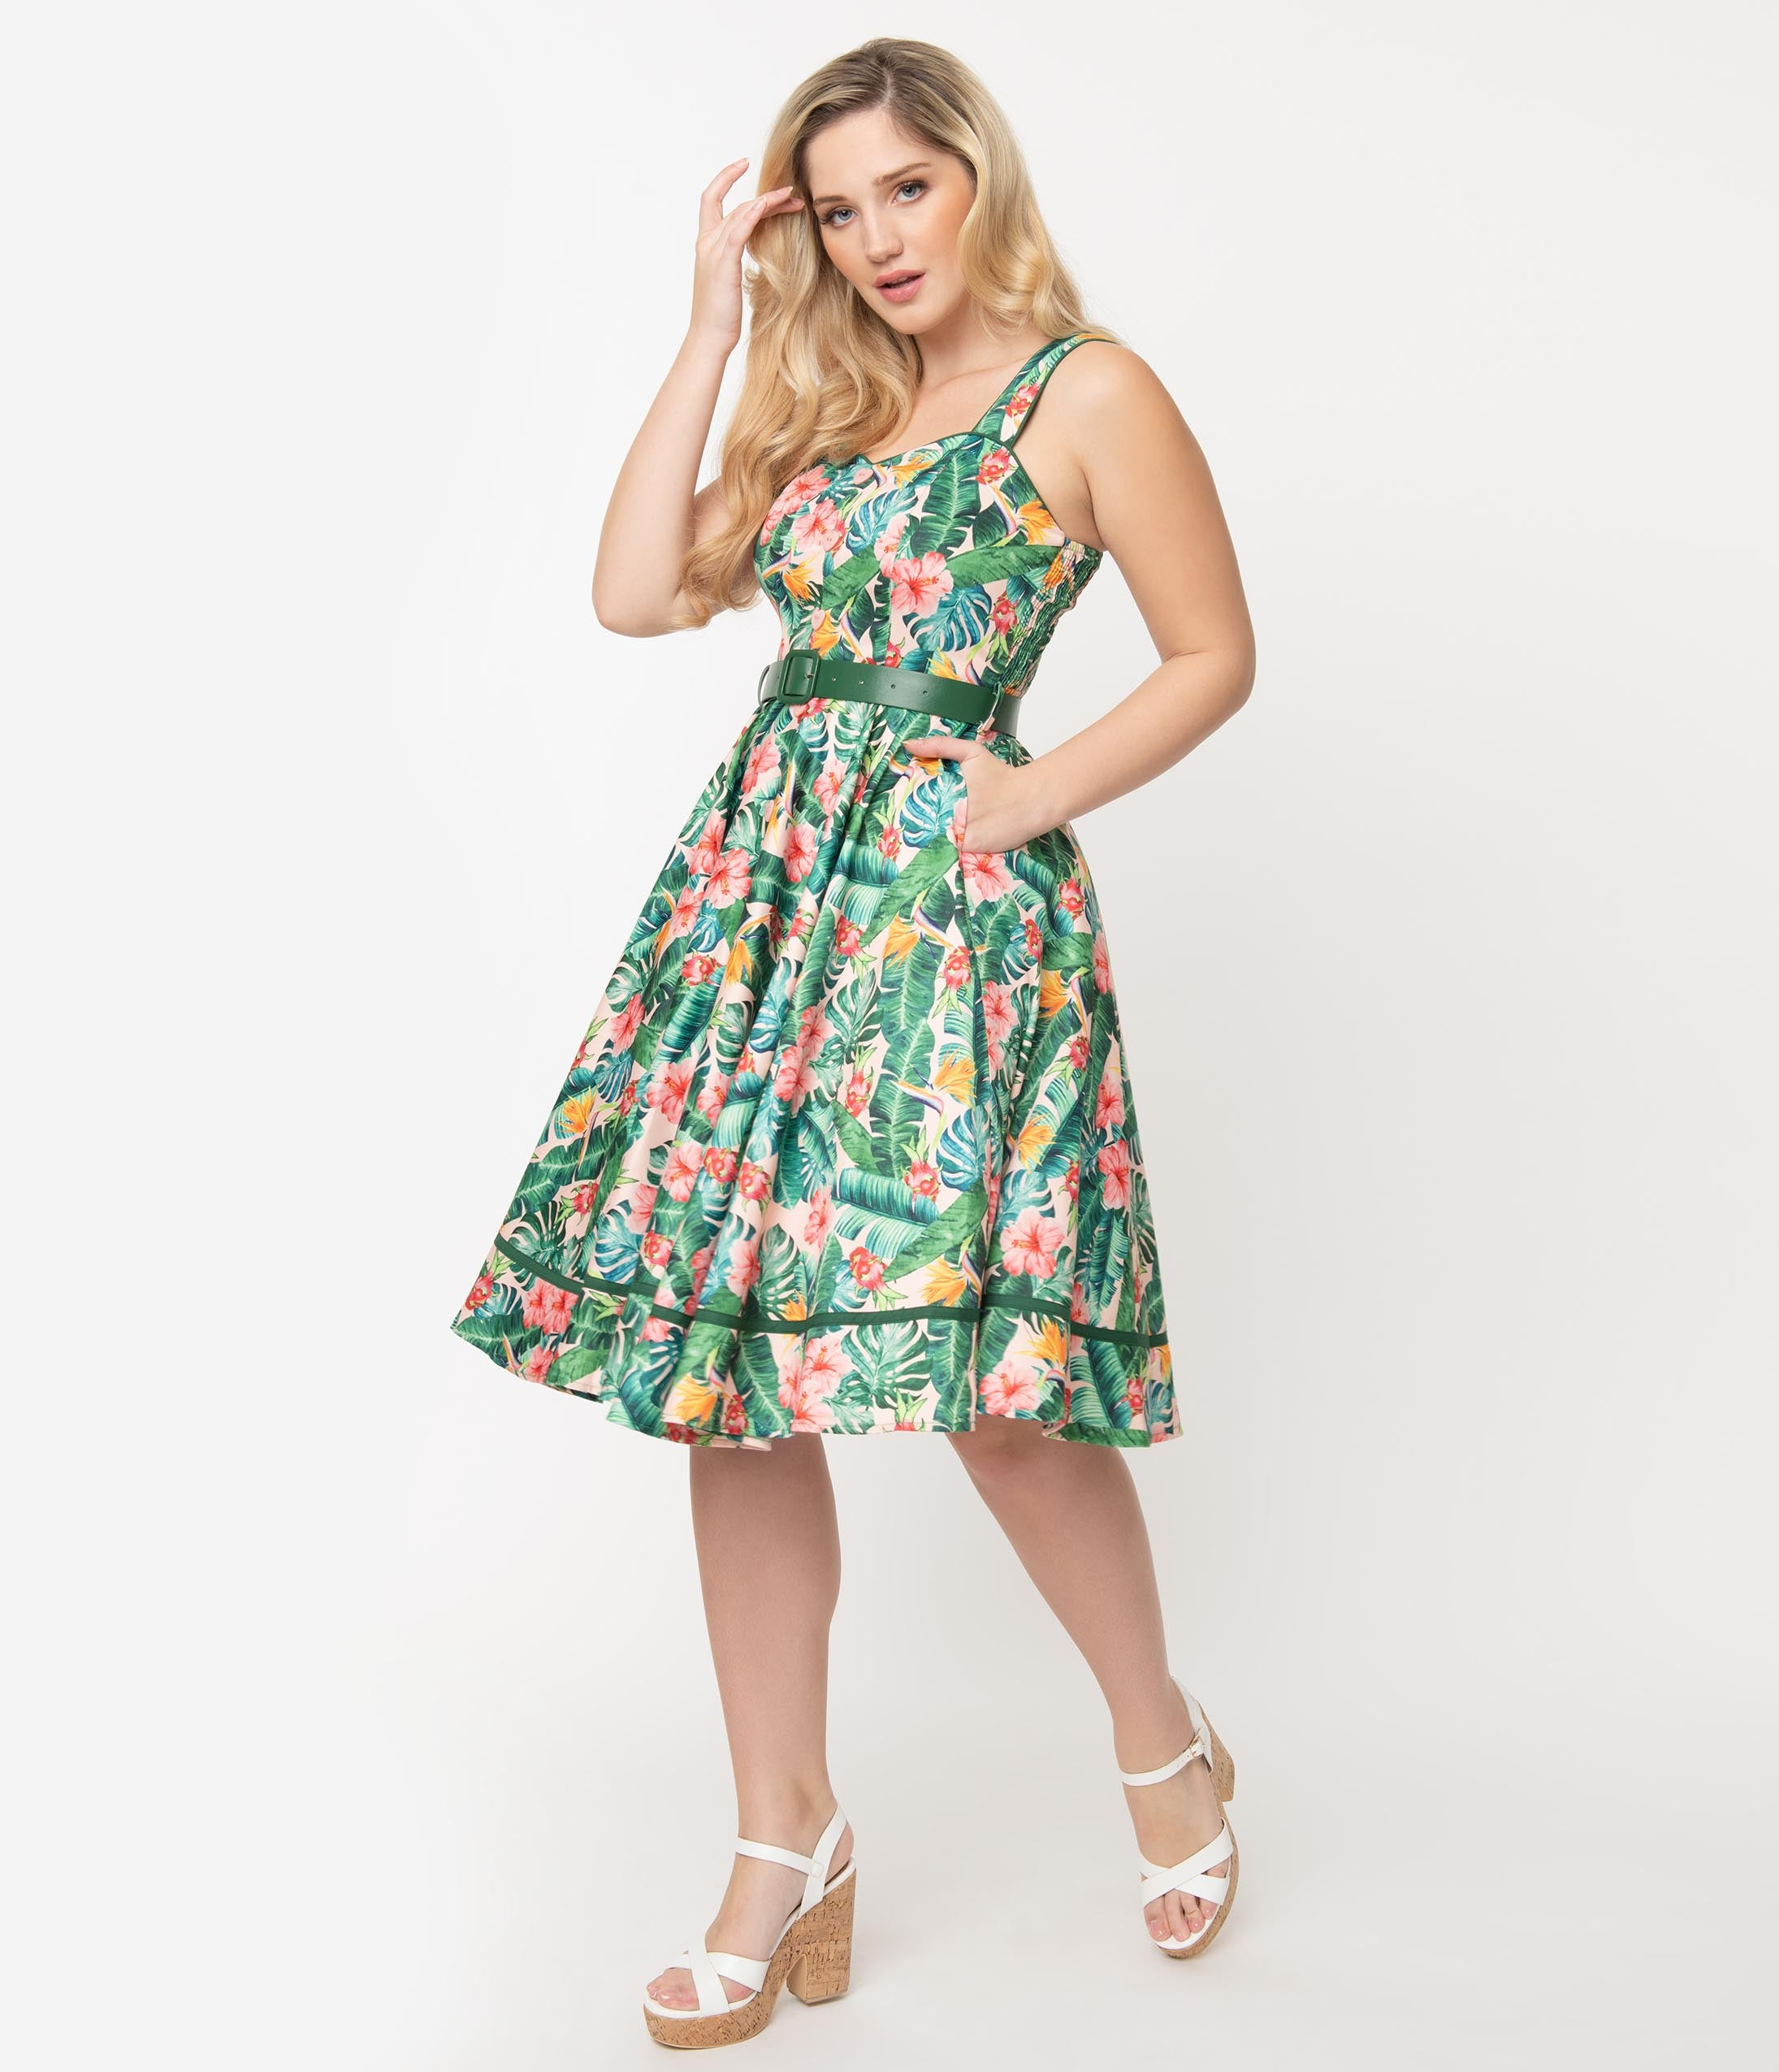 1950s Swing Dresses | 50s Swing Dress Voodoo Vixen 1950S Style Tropical Print Swing Dress $88.00 AT vintagedancer.com